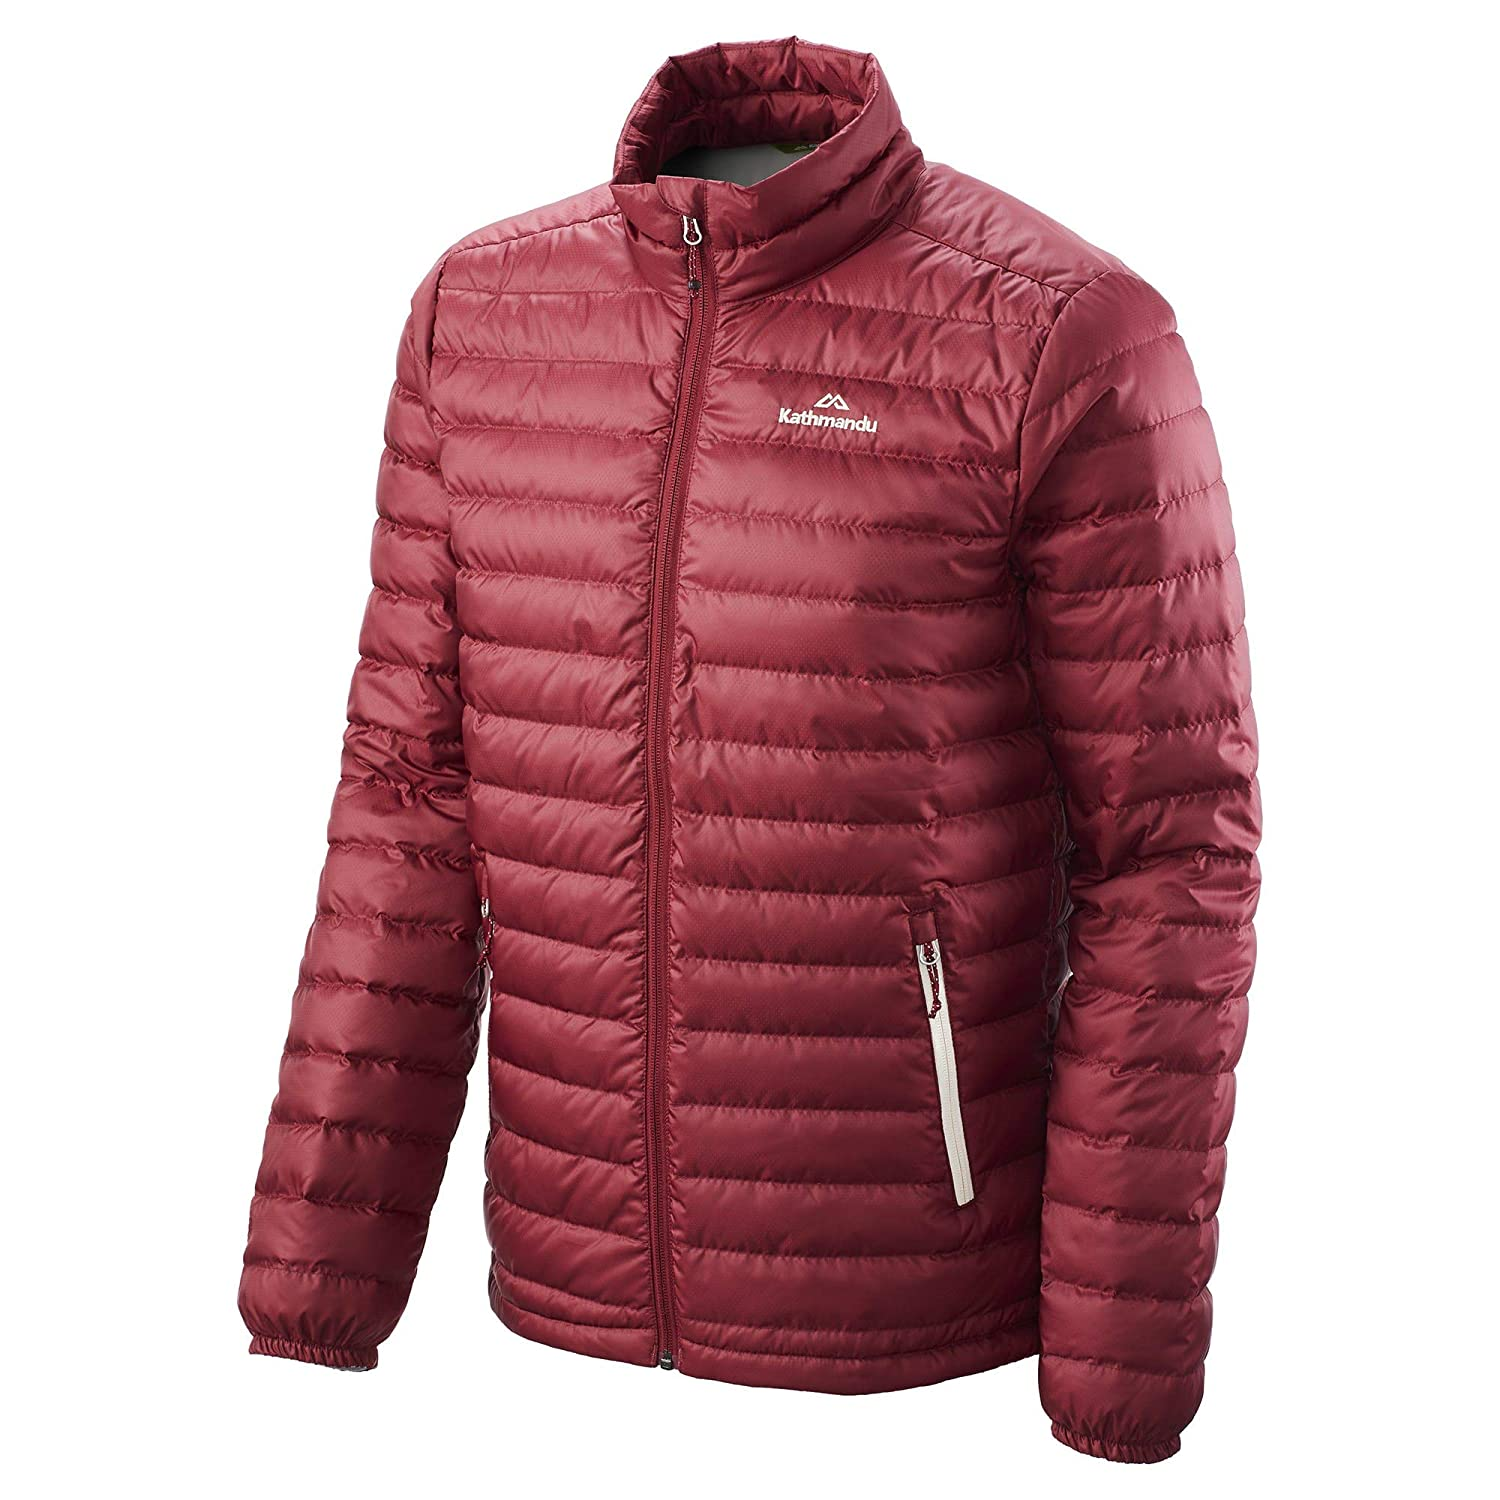 Kathmandu Heli Mens Lightweight Down Jacket